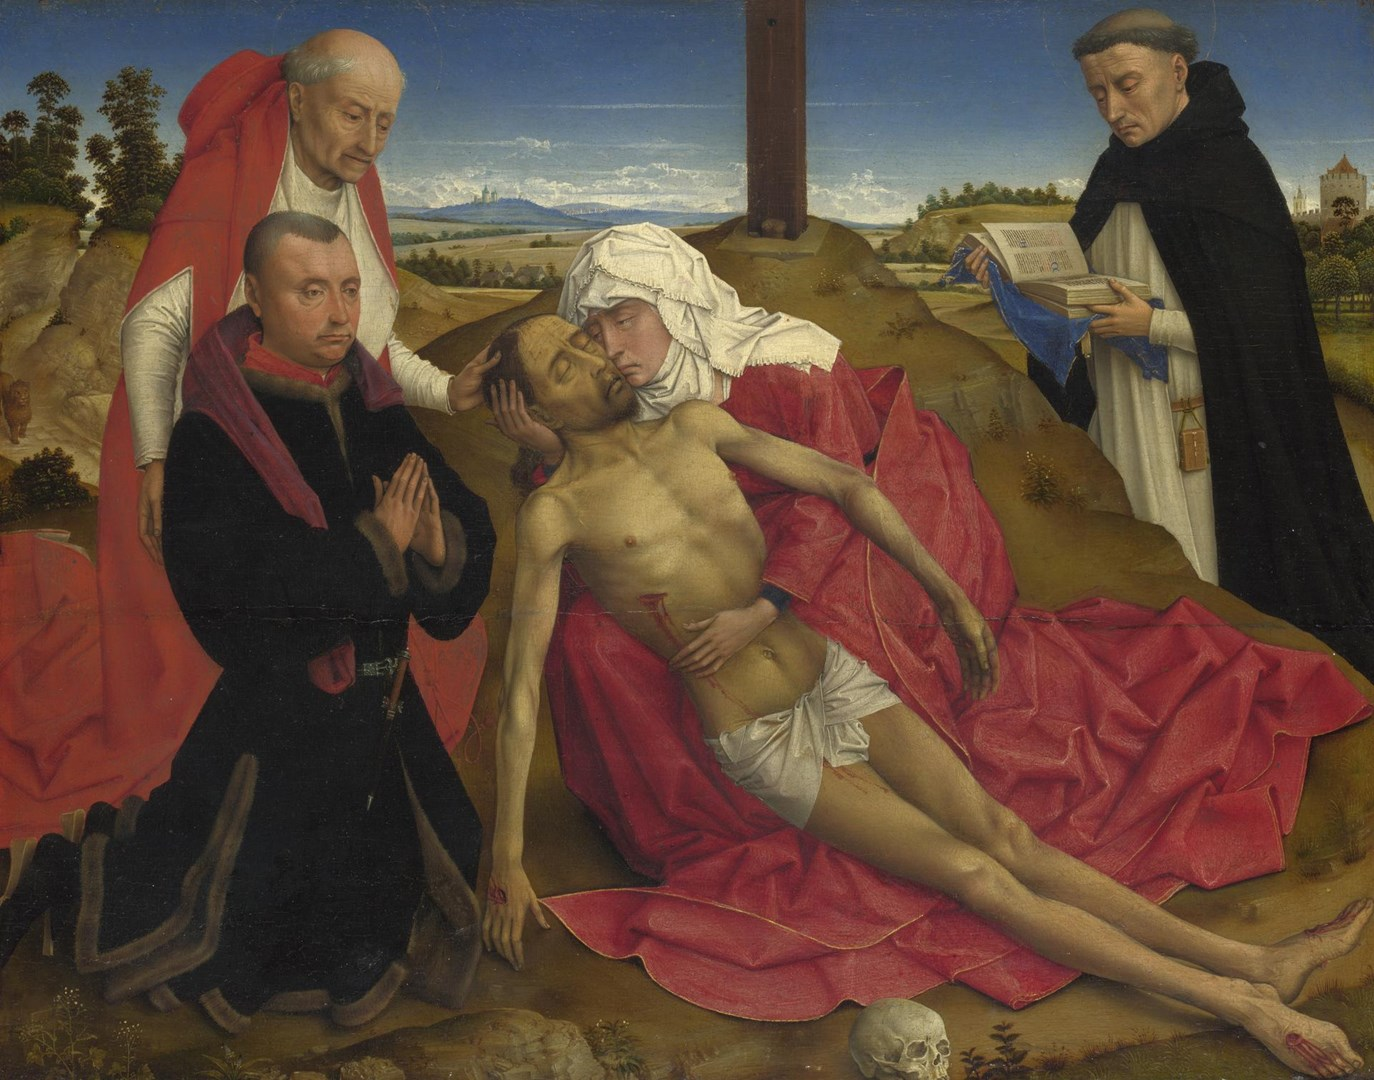 Pietà by Probably by the workshop of Rogier van der Weyden